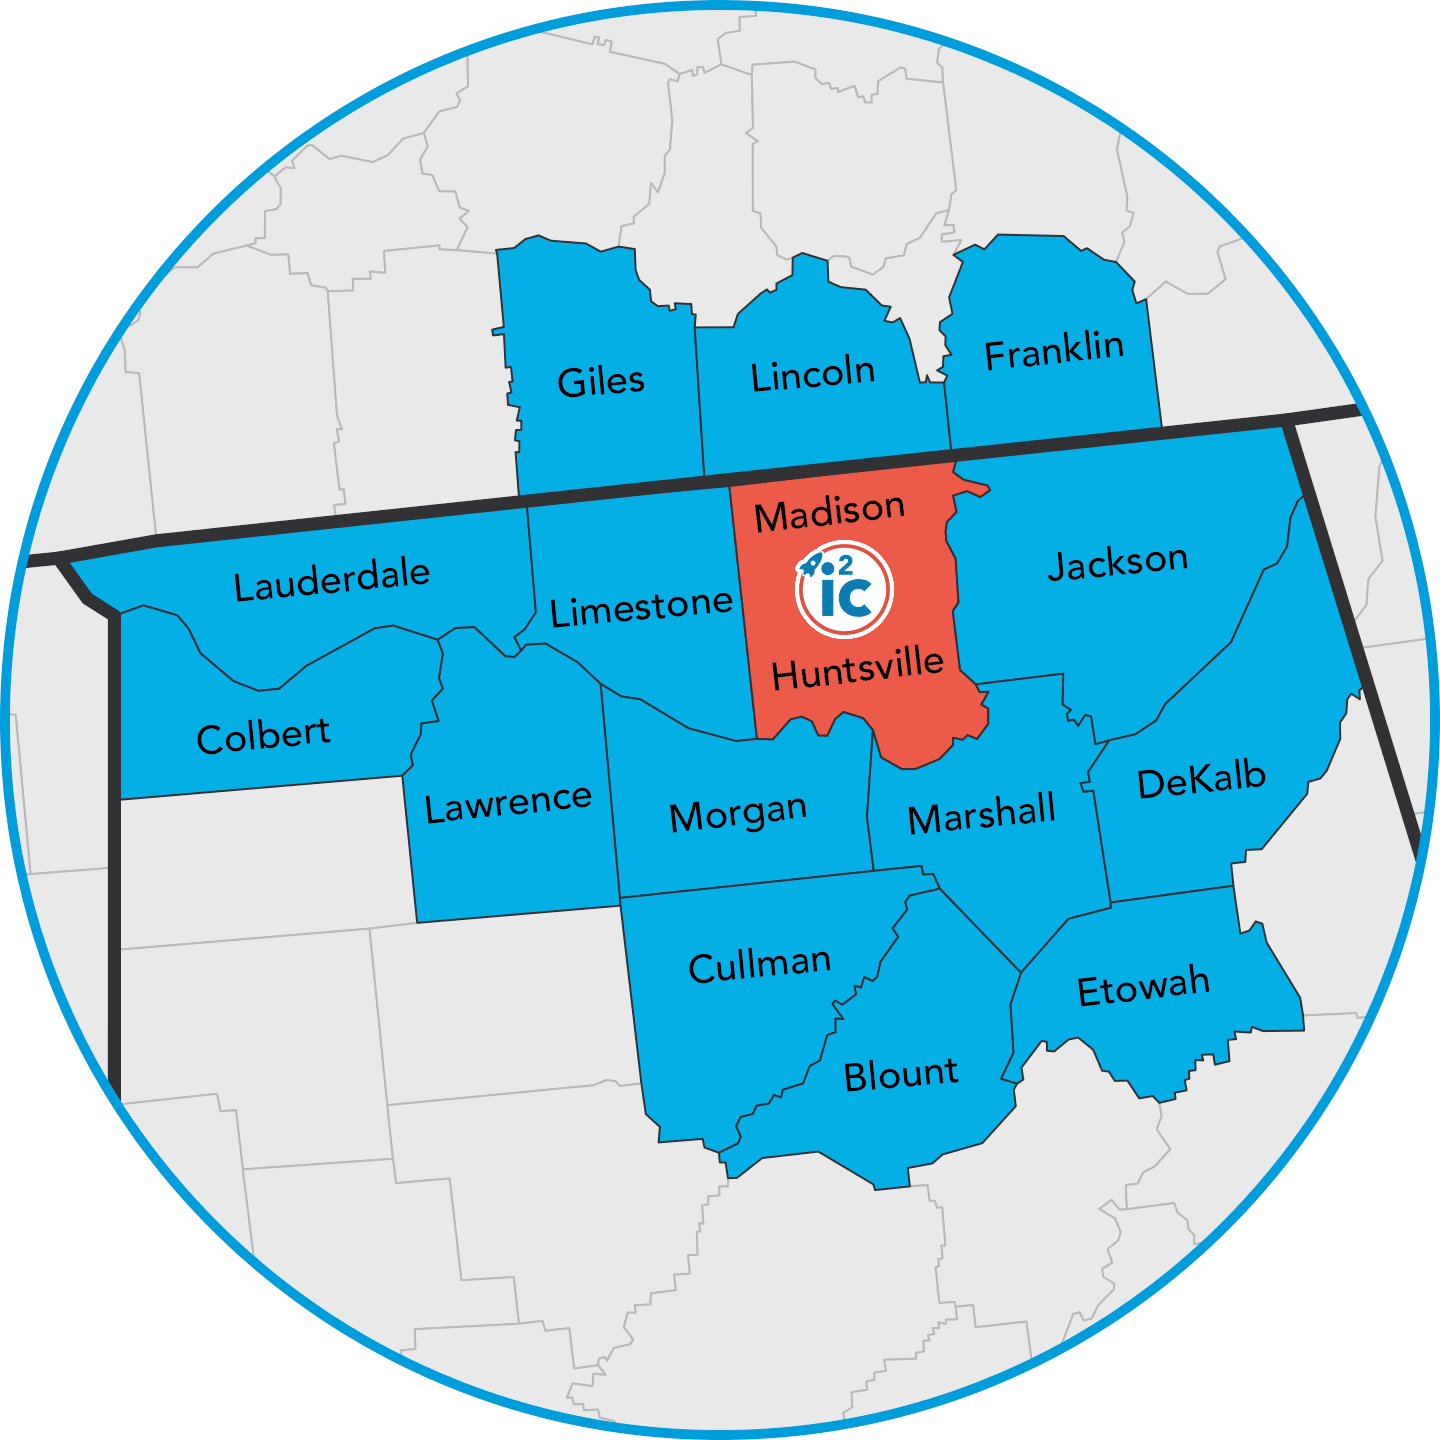 Map showing the innovation region of Northern Alabama and South-Central Tennessee